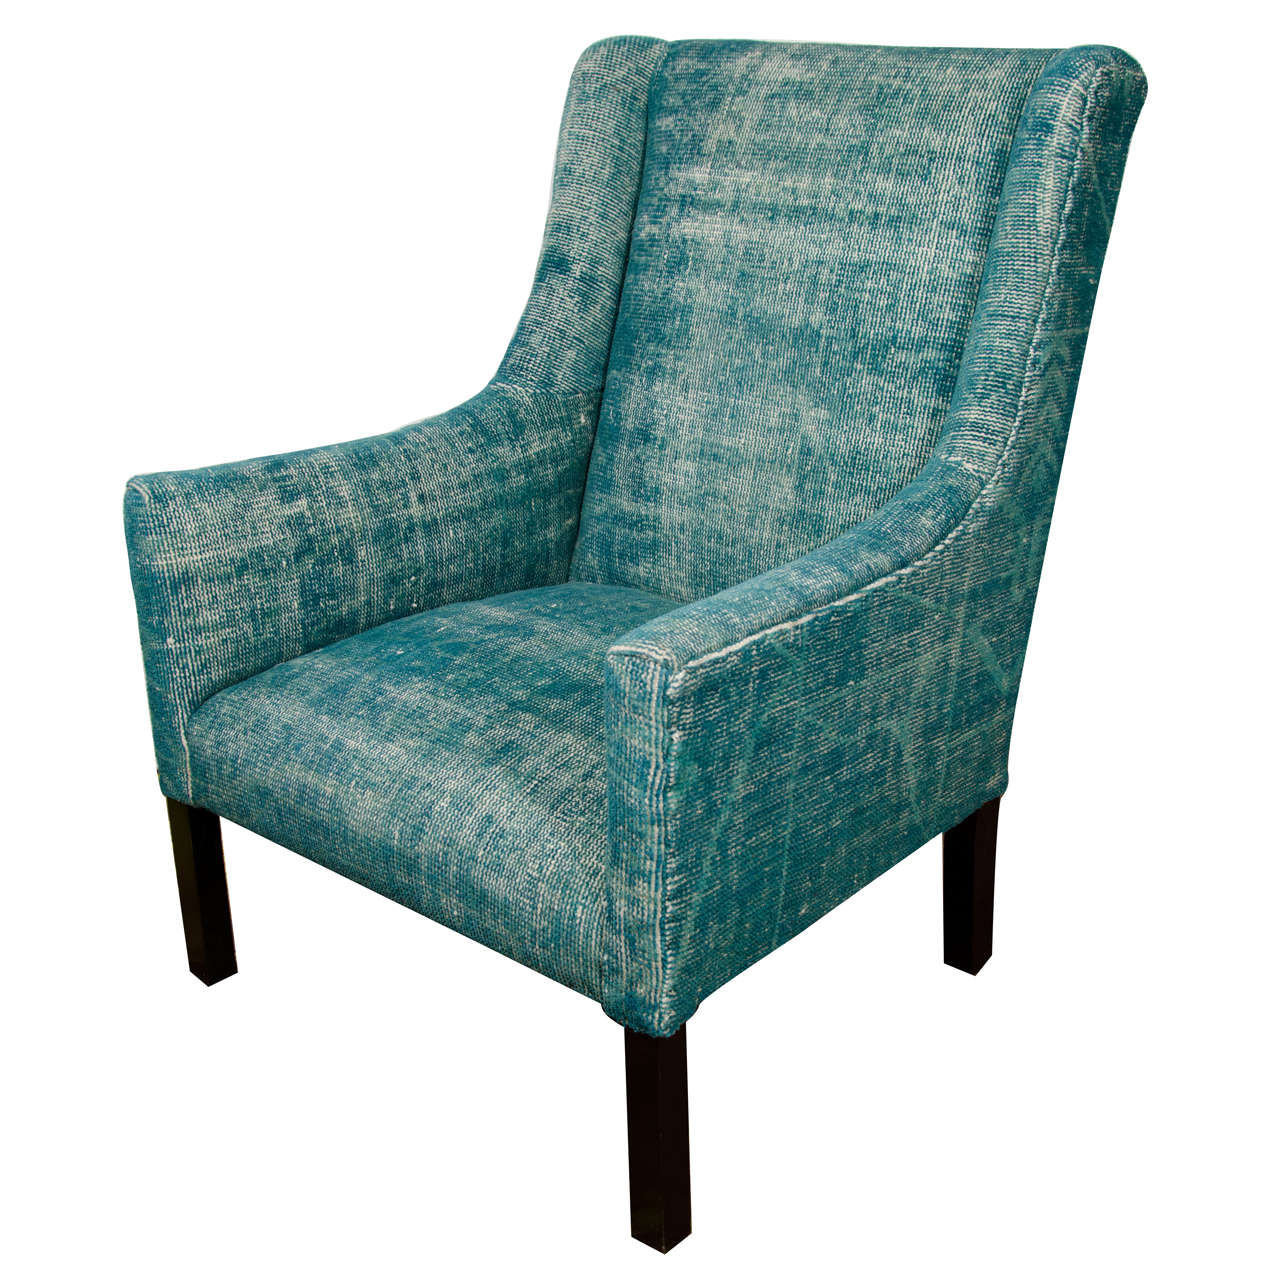 Indian Dhurrie Upholstered Teal Arm Chair at 1stdibs